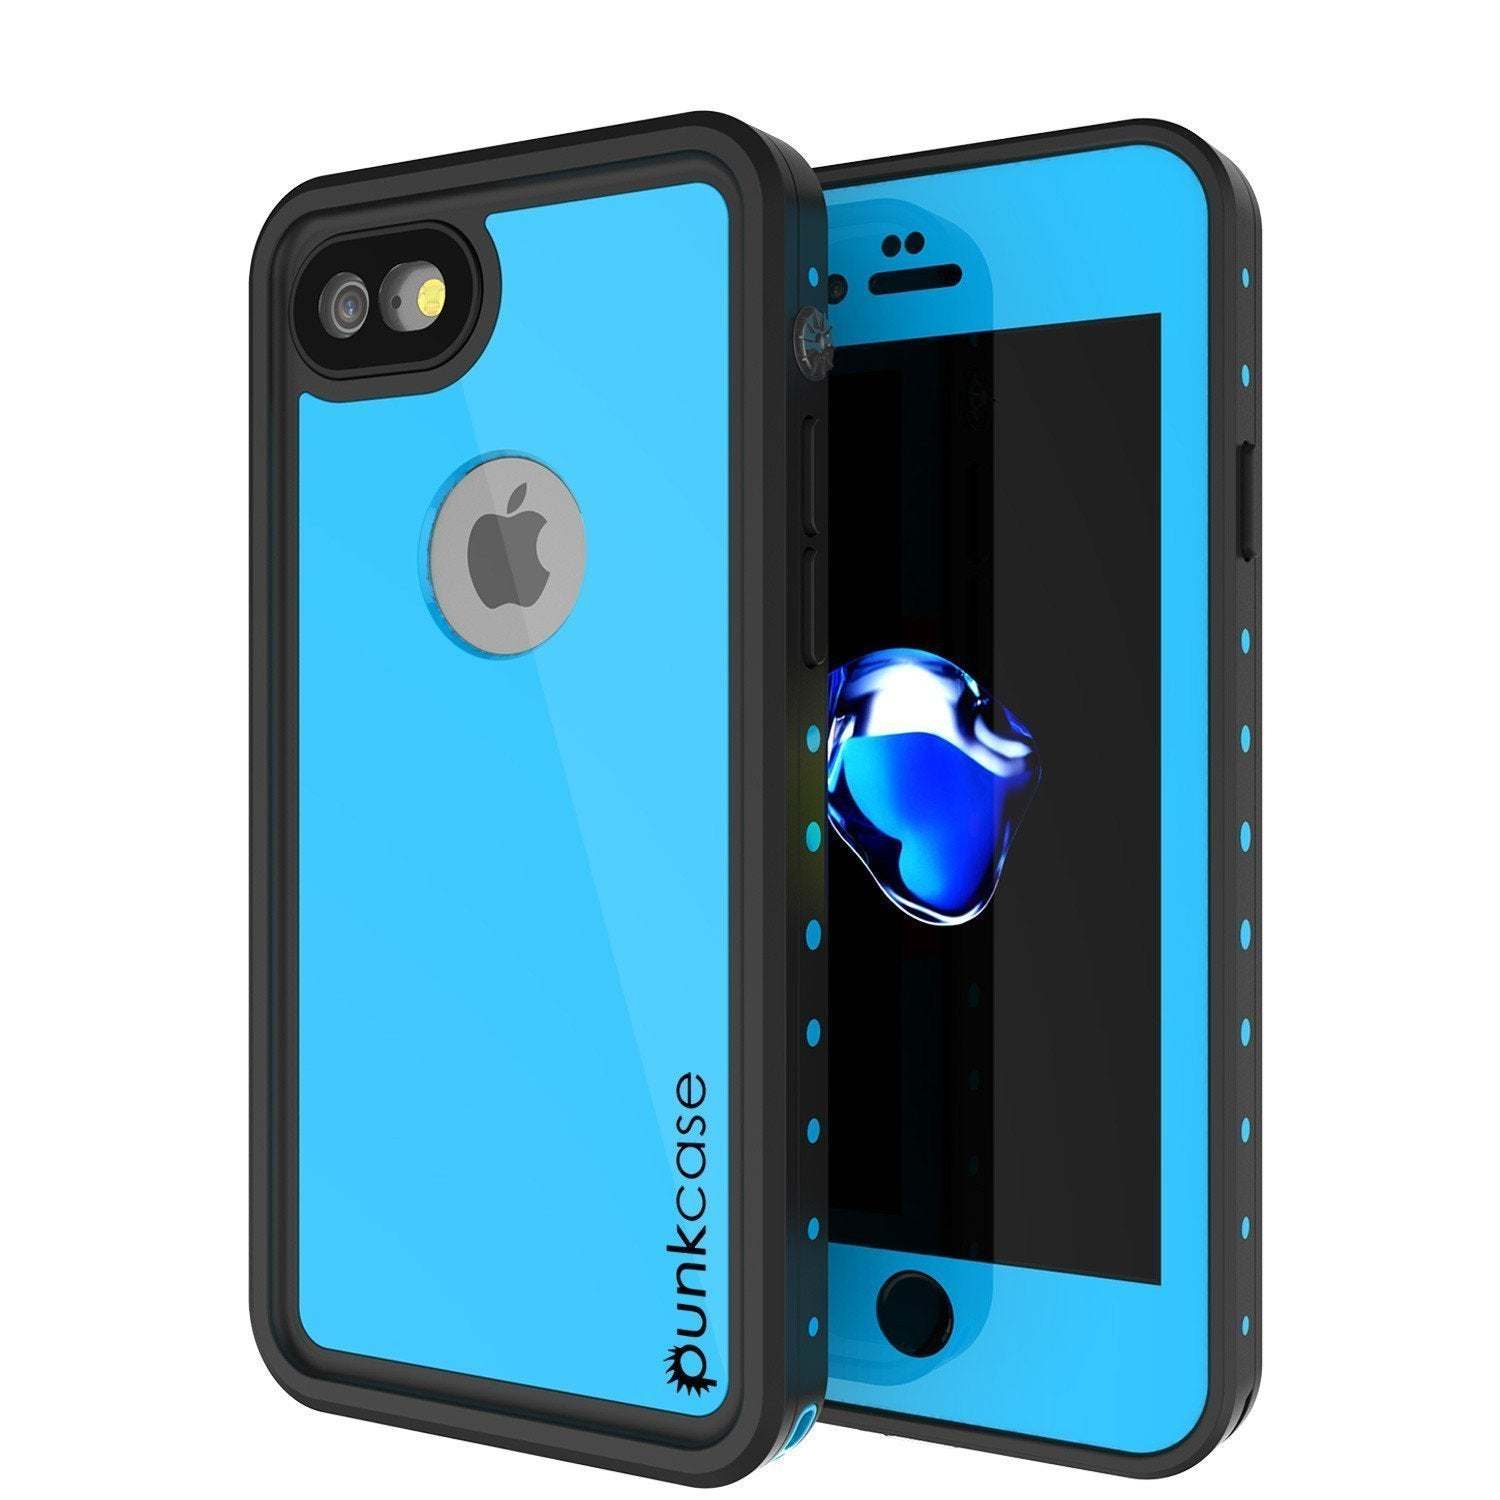 "iPhone SE (4.7"") Waterproof Case, Punkcase [Light Blue] [StudStar Series]  [Slim Fit] [IP68 Certified] [Dirt/Snow Proof]"